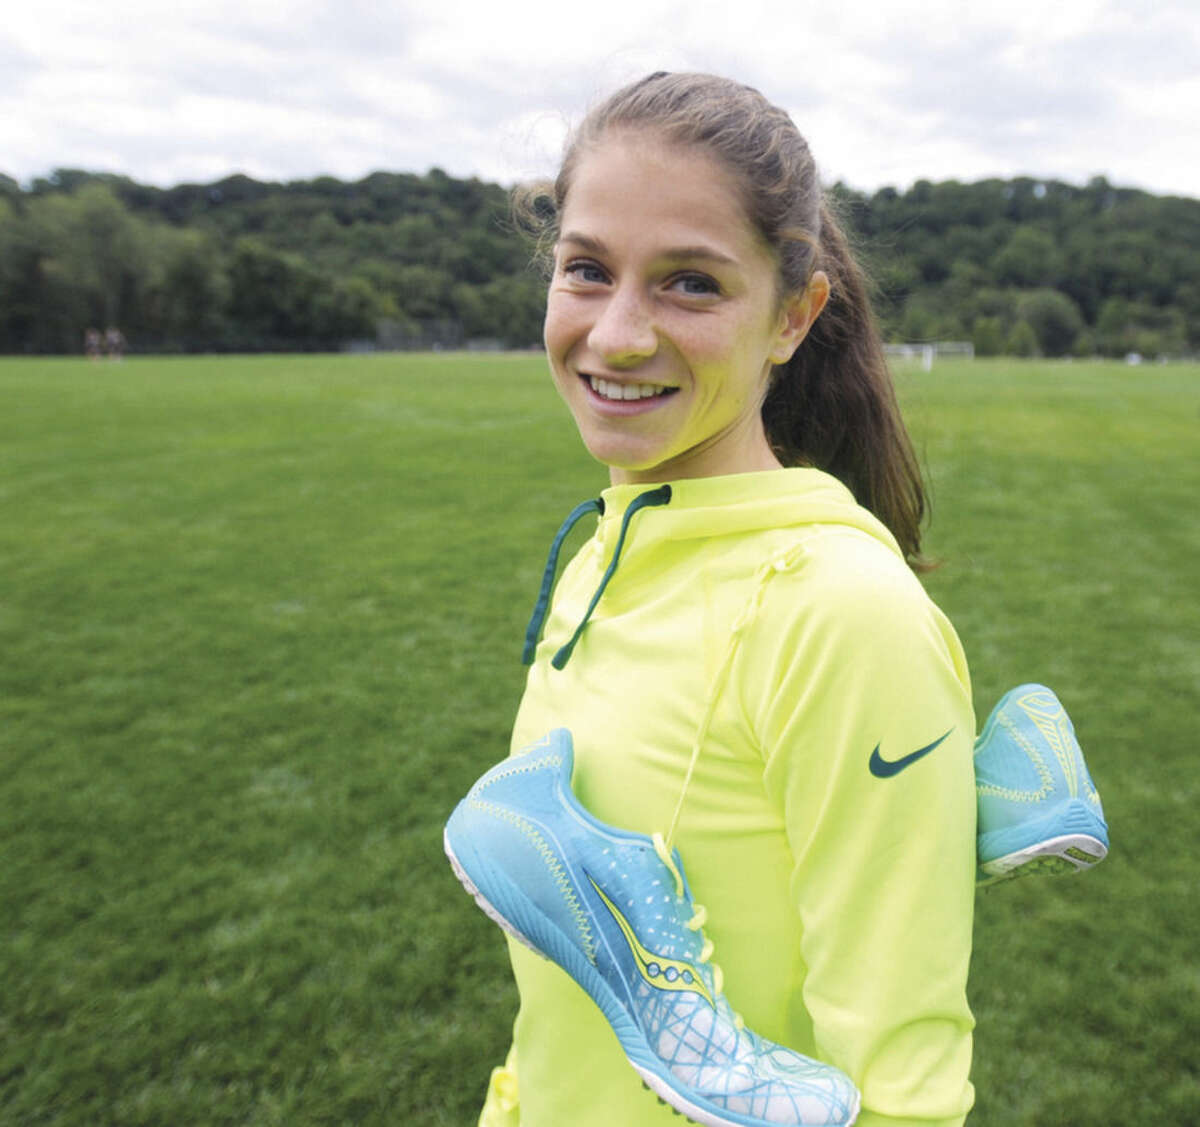 Hour photo/John Nash Ericka Randazzo is a Norwalk resident who runs for Westhill High School. An injury pushed her to switch from soccer to cross country.